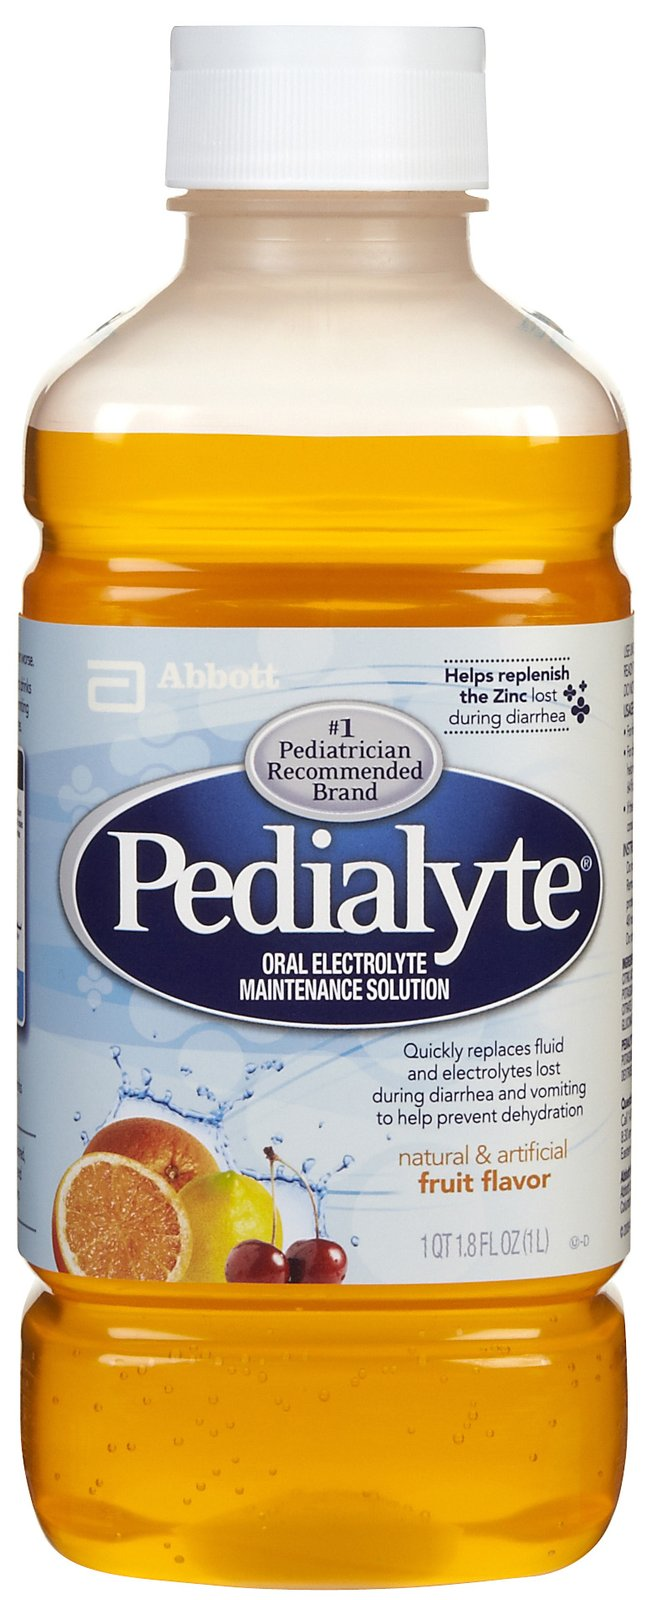 Can You Drink Pedialyte Daily : drink, pedialyte, daily, Pedialyte, WONDERFUL, Thing!, EVERYday-a, Times, LaLe's, Life~♥, DoesNOT, Tak…, Homemade, Electrolyte, Drink,, Electrolytes,, Fruit